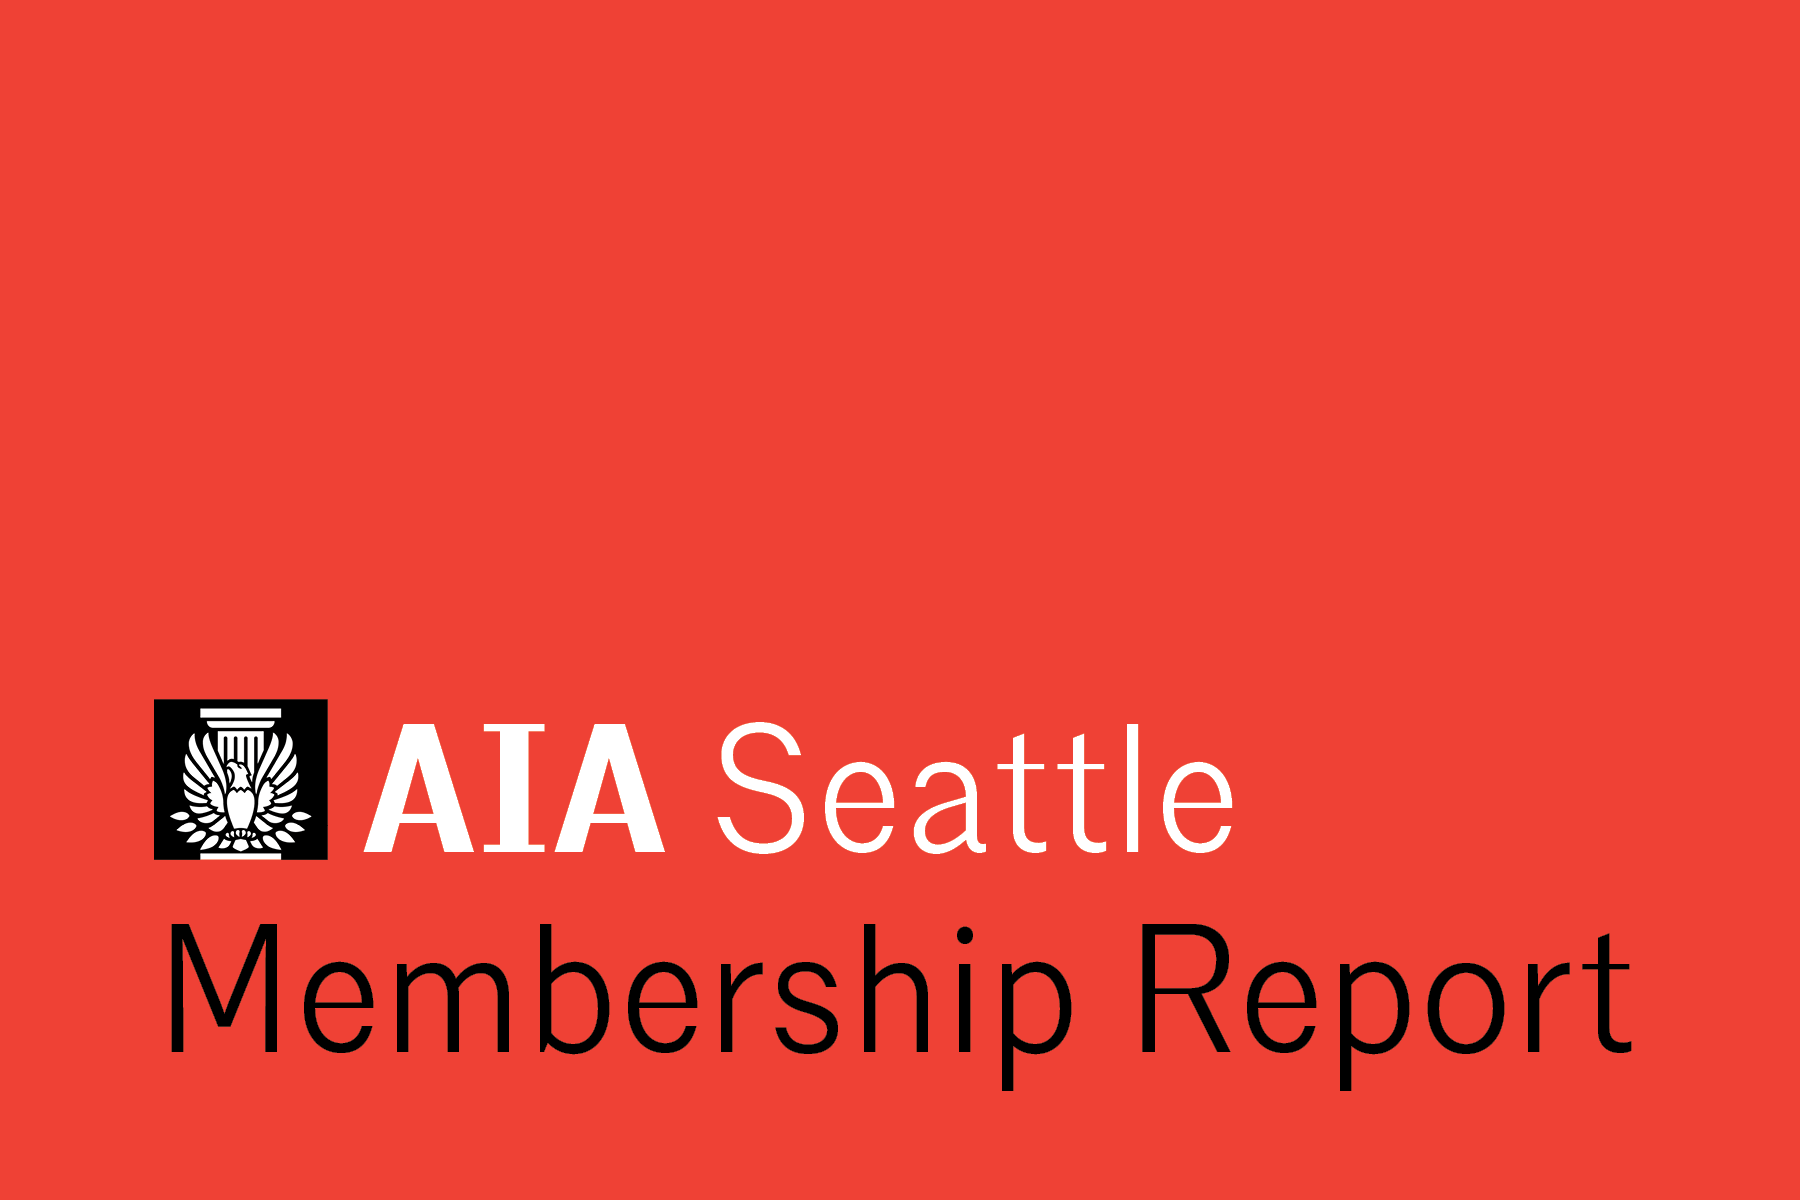 AIA members in the state of Washington will soon start seeing big changes, a result of more than a year of hard work by volunteer leaders across the state.  These changes will directly benefit members in Seattle, and launch a new era for AIA in Washington State.